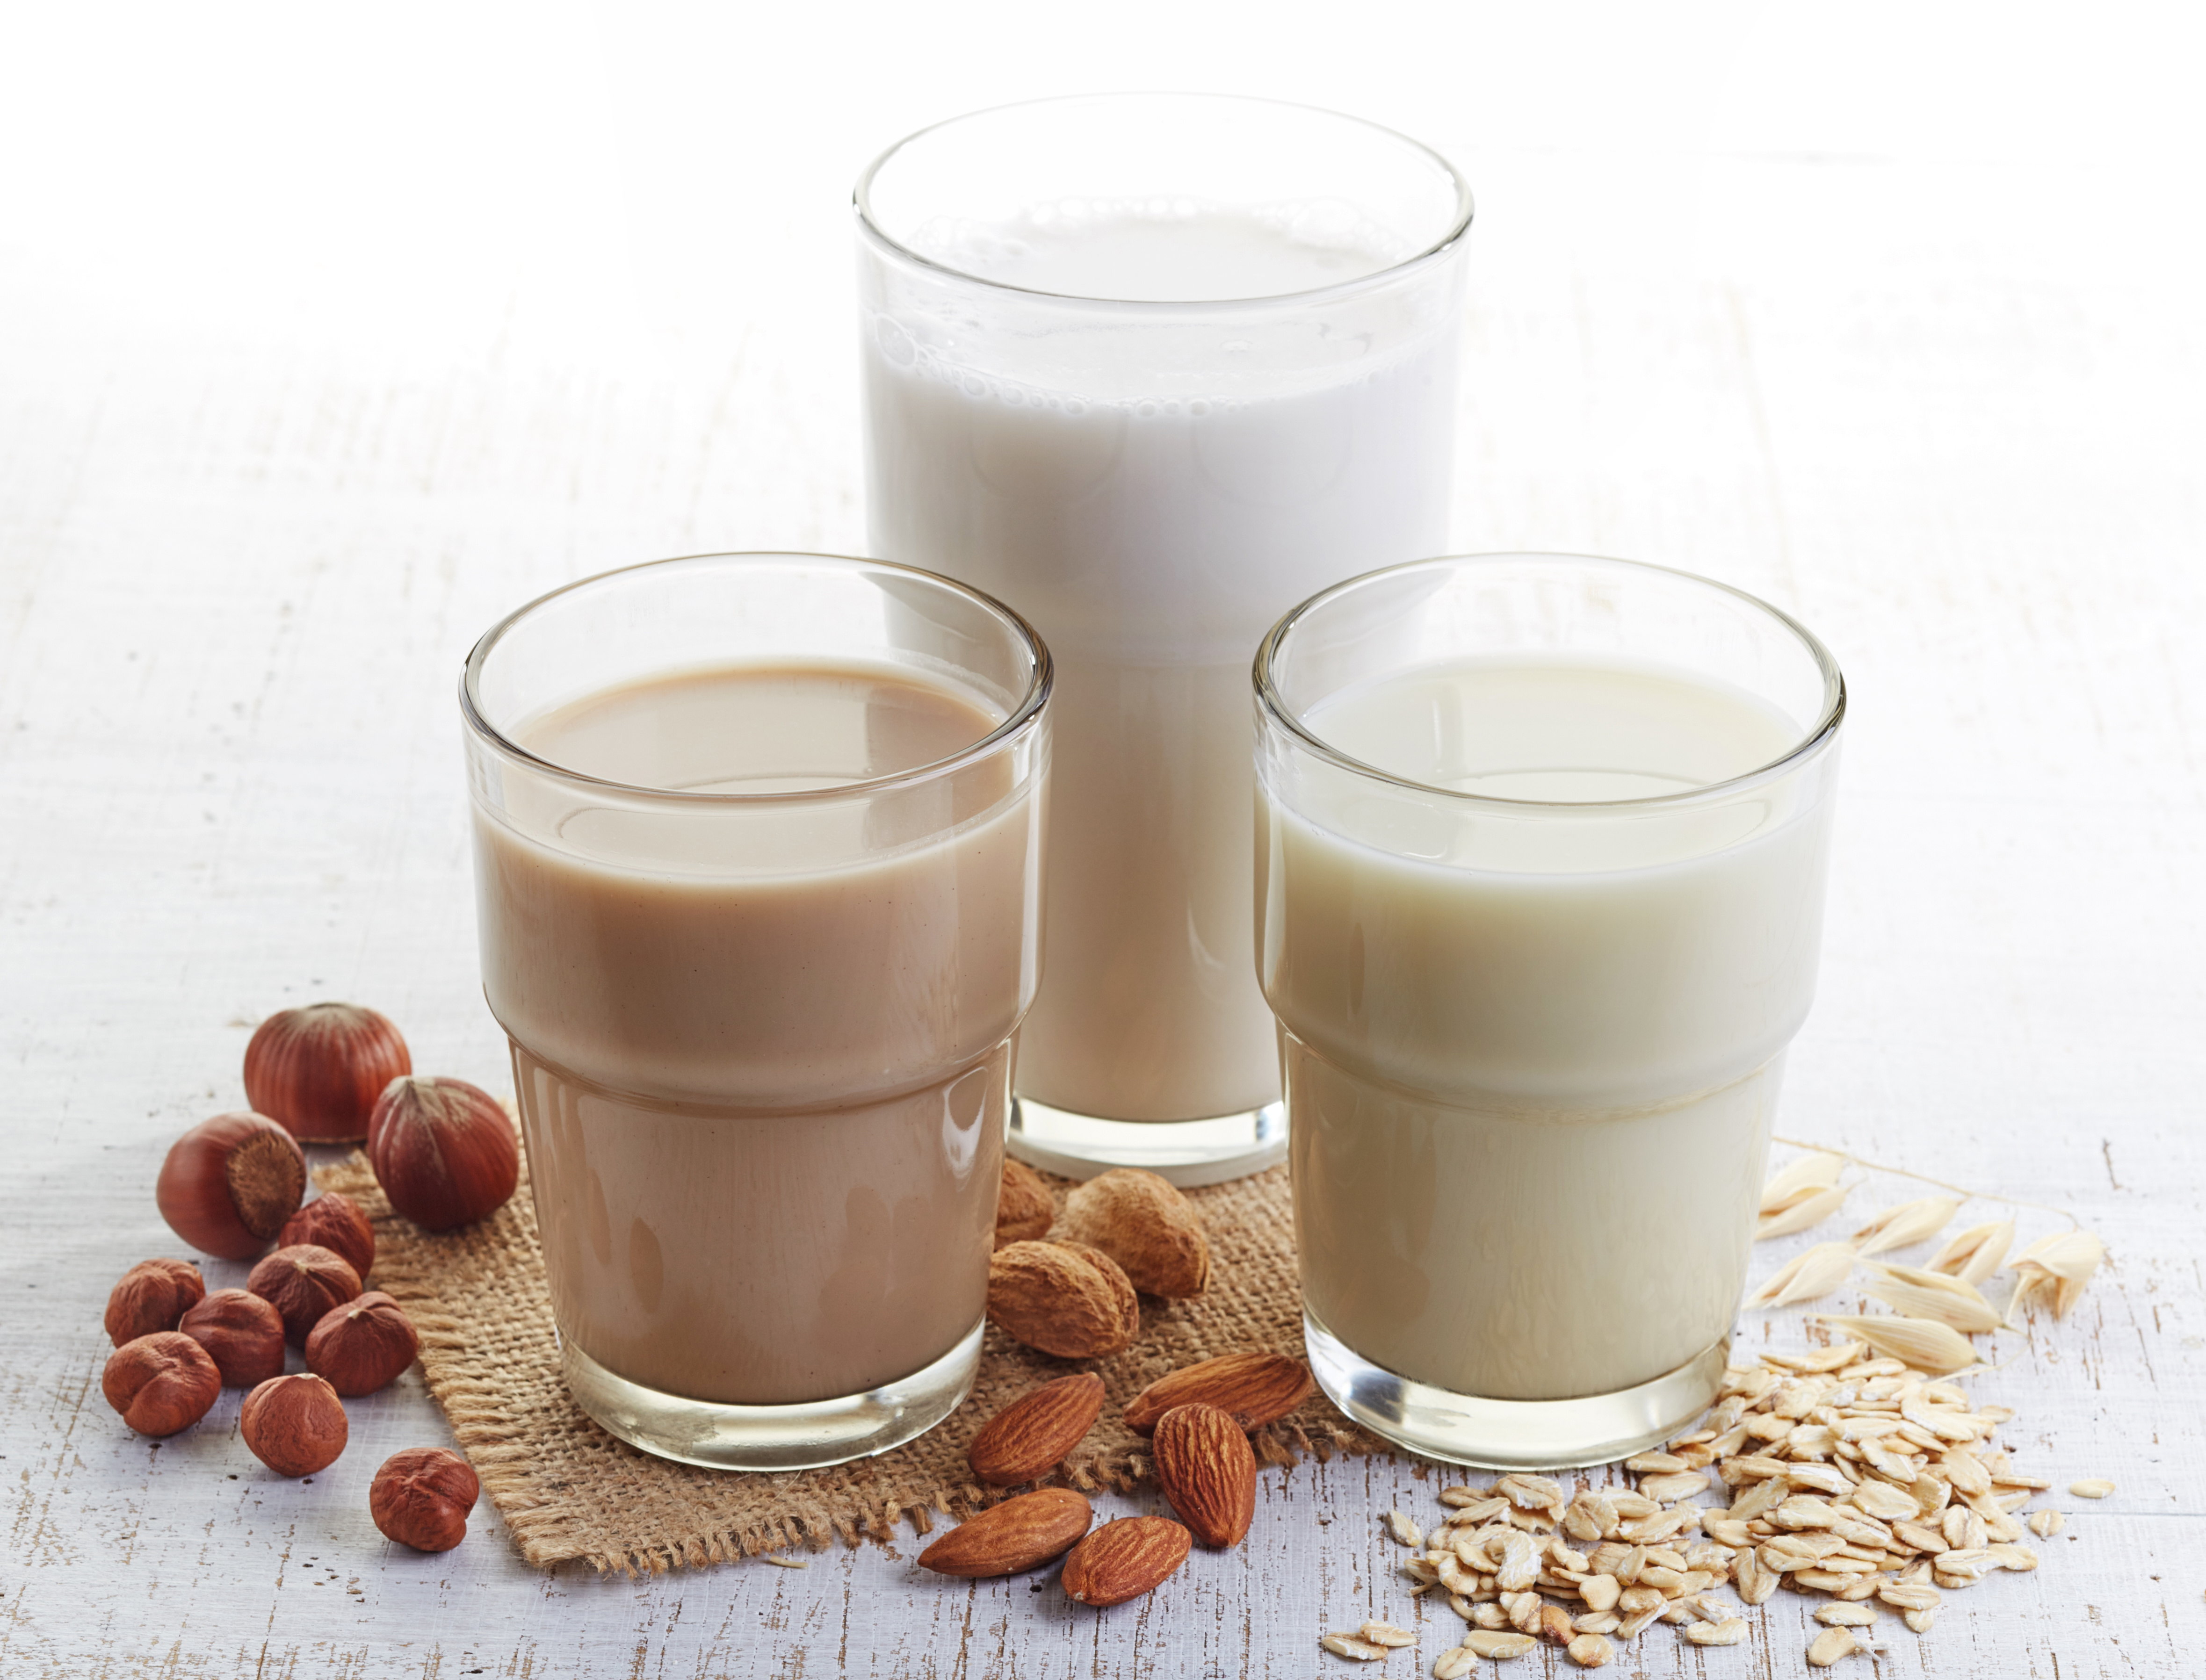 CWA declares war on almond, soy, rice, and coconut milk.